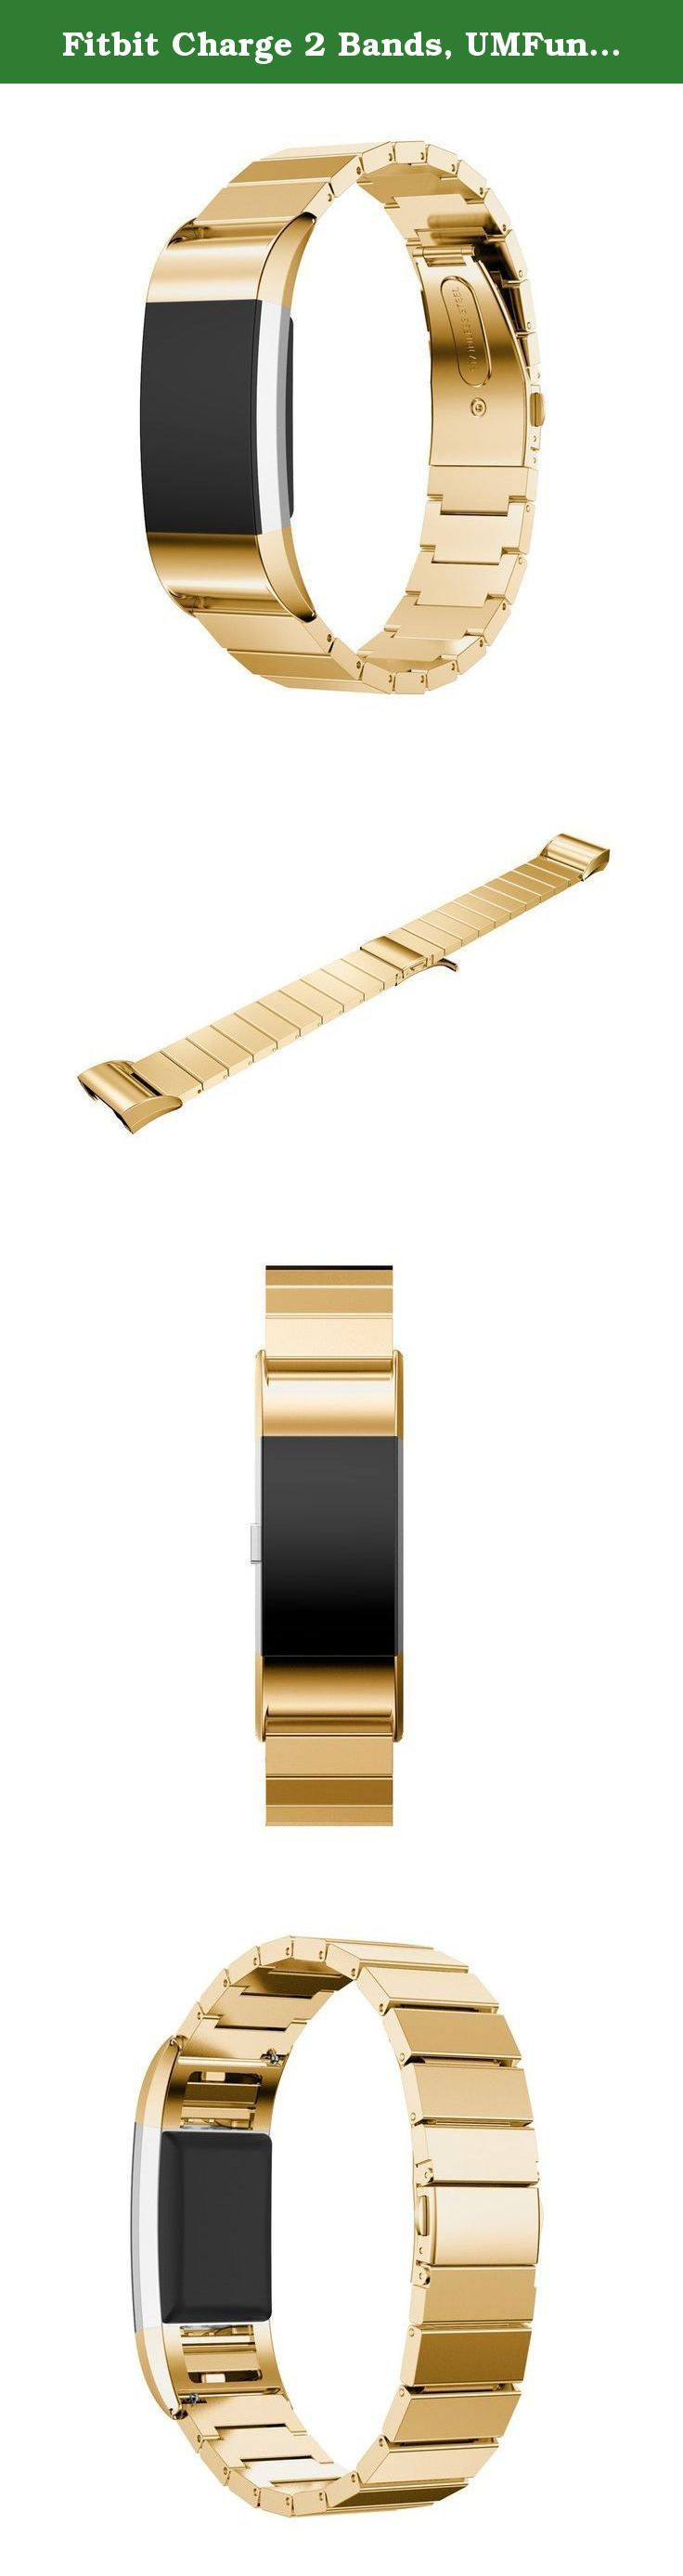 Fitbit Charge 2 Bands, UMFun Genuine Stainless Steel Bracelet Smart Watch Band Strap For Fitbit Charge 2-170-220mm (Gold). ☛: Package Include: ☛: 1pc Genuine Stainless Steel Bracelet Smart Watch Band Strap For Fitbit Charge 2 (without retail package).